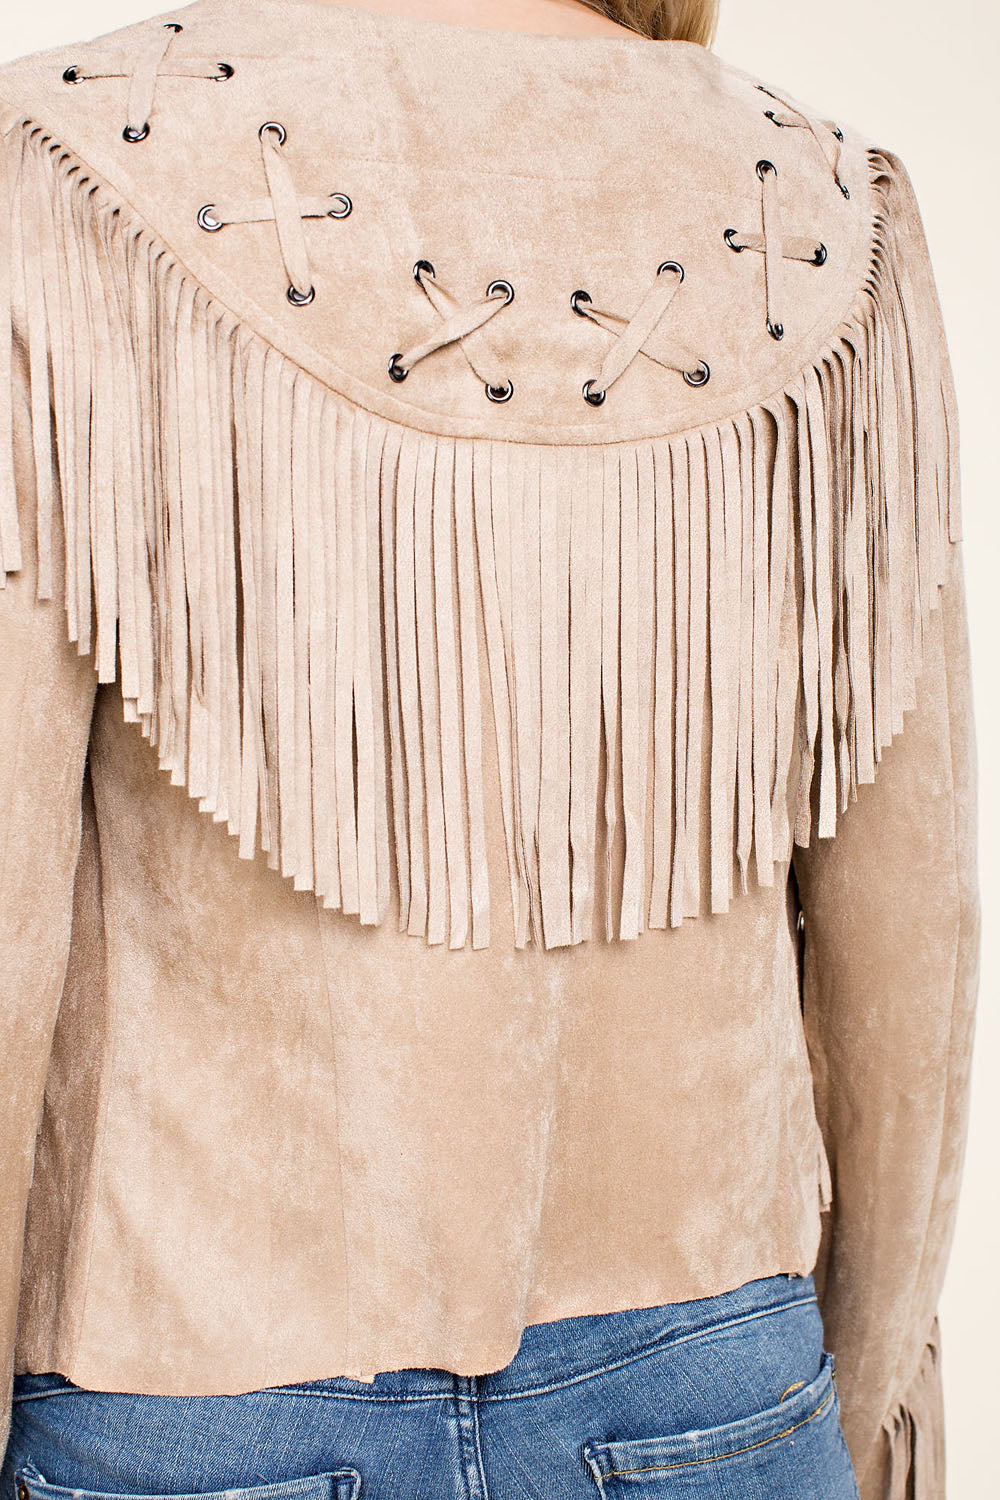 Suede Jacket with Fringe Details Tassels